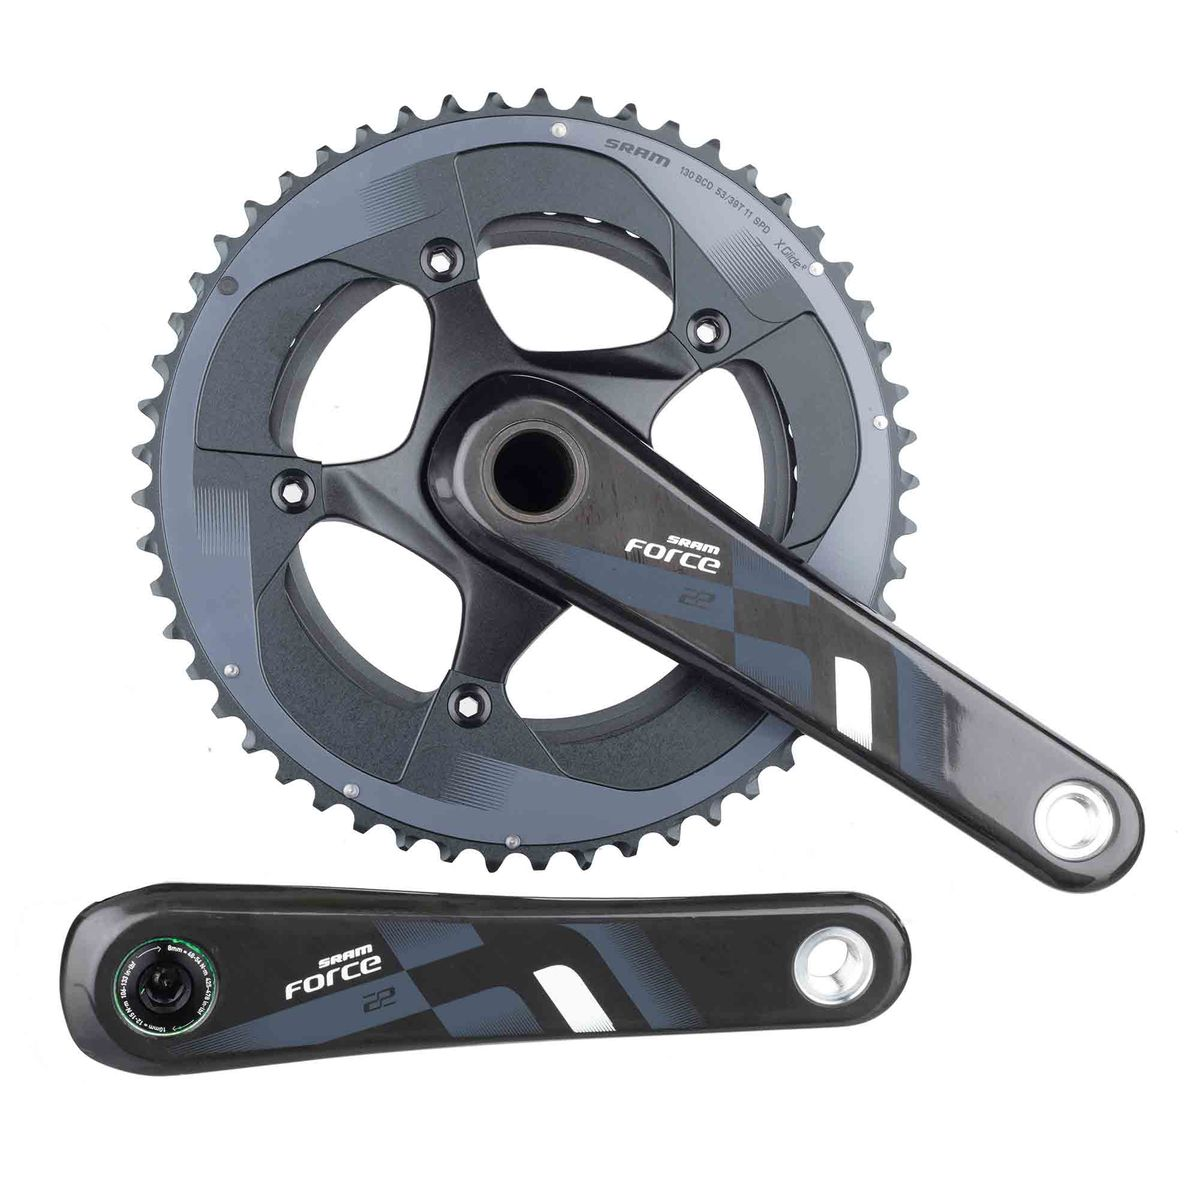 Force 22 crankset